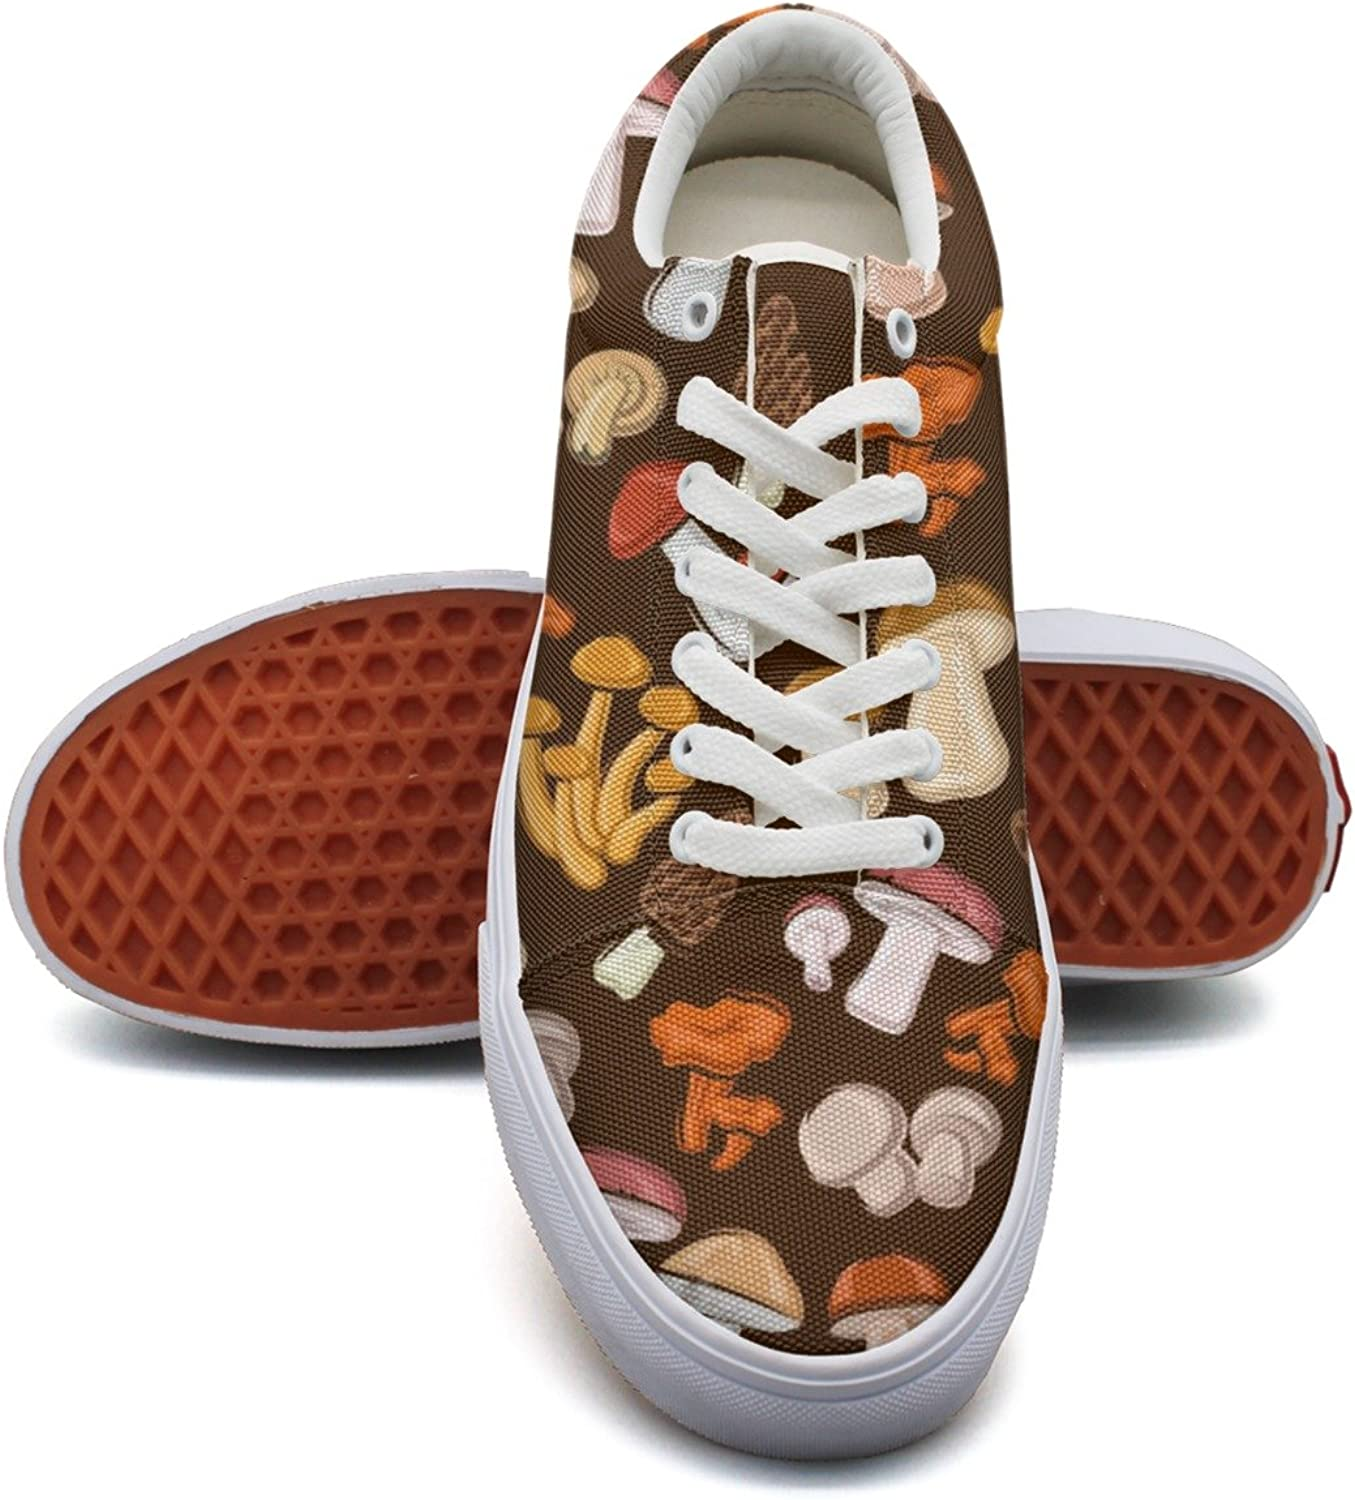 Vintage Mushroom Fashion Canvas Sneakers shoes For Womns 3D Printed Low Top Walking shoes